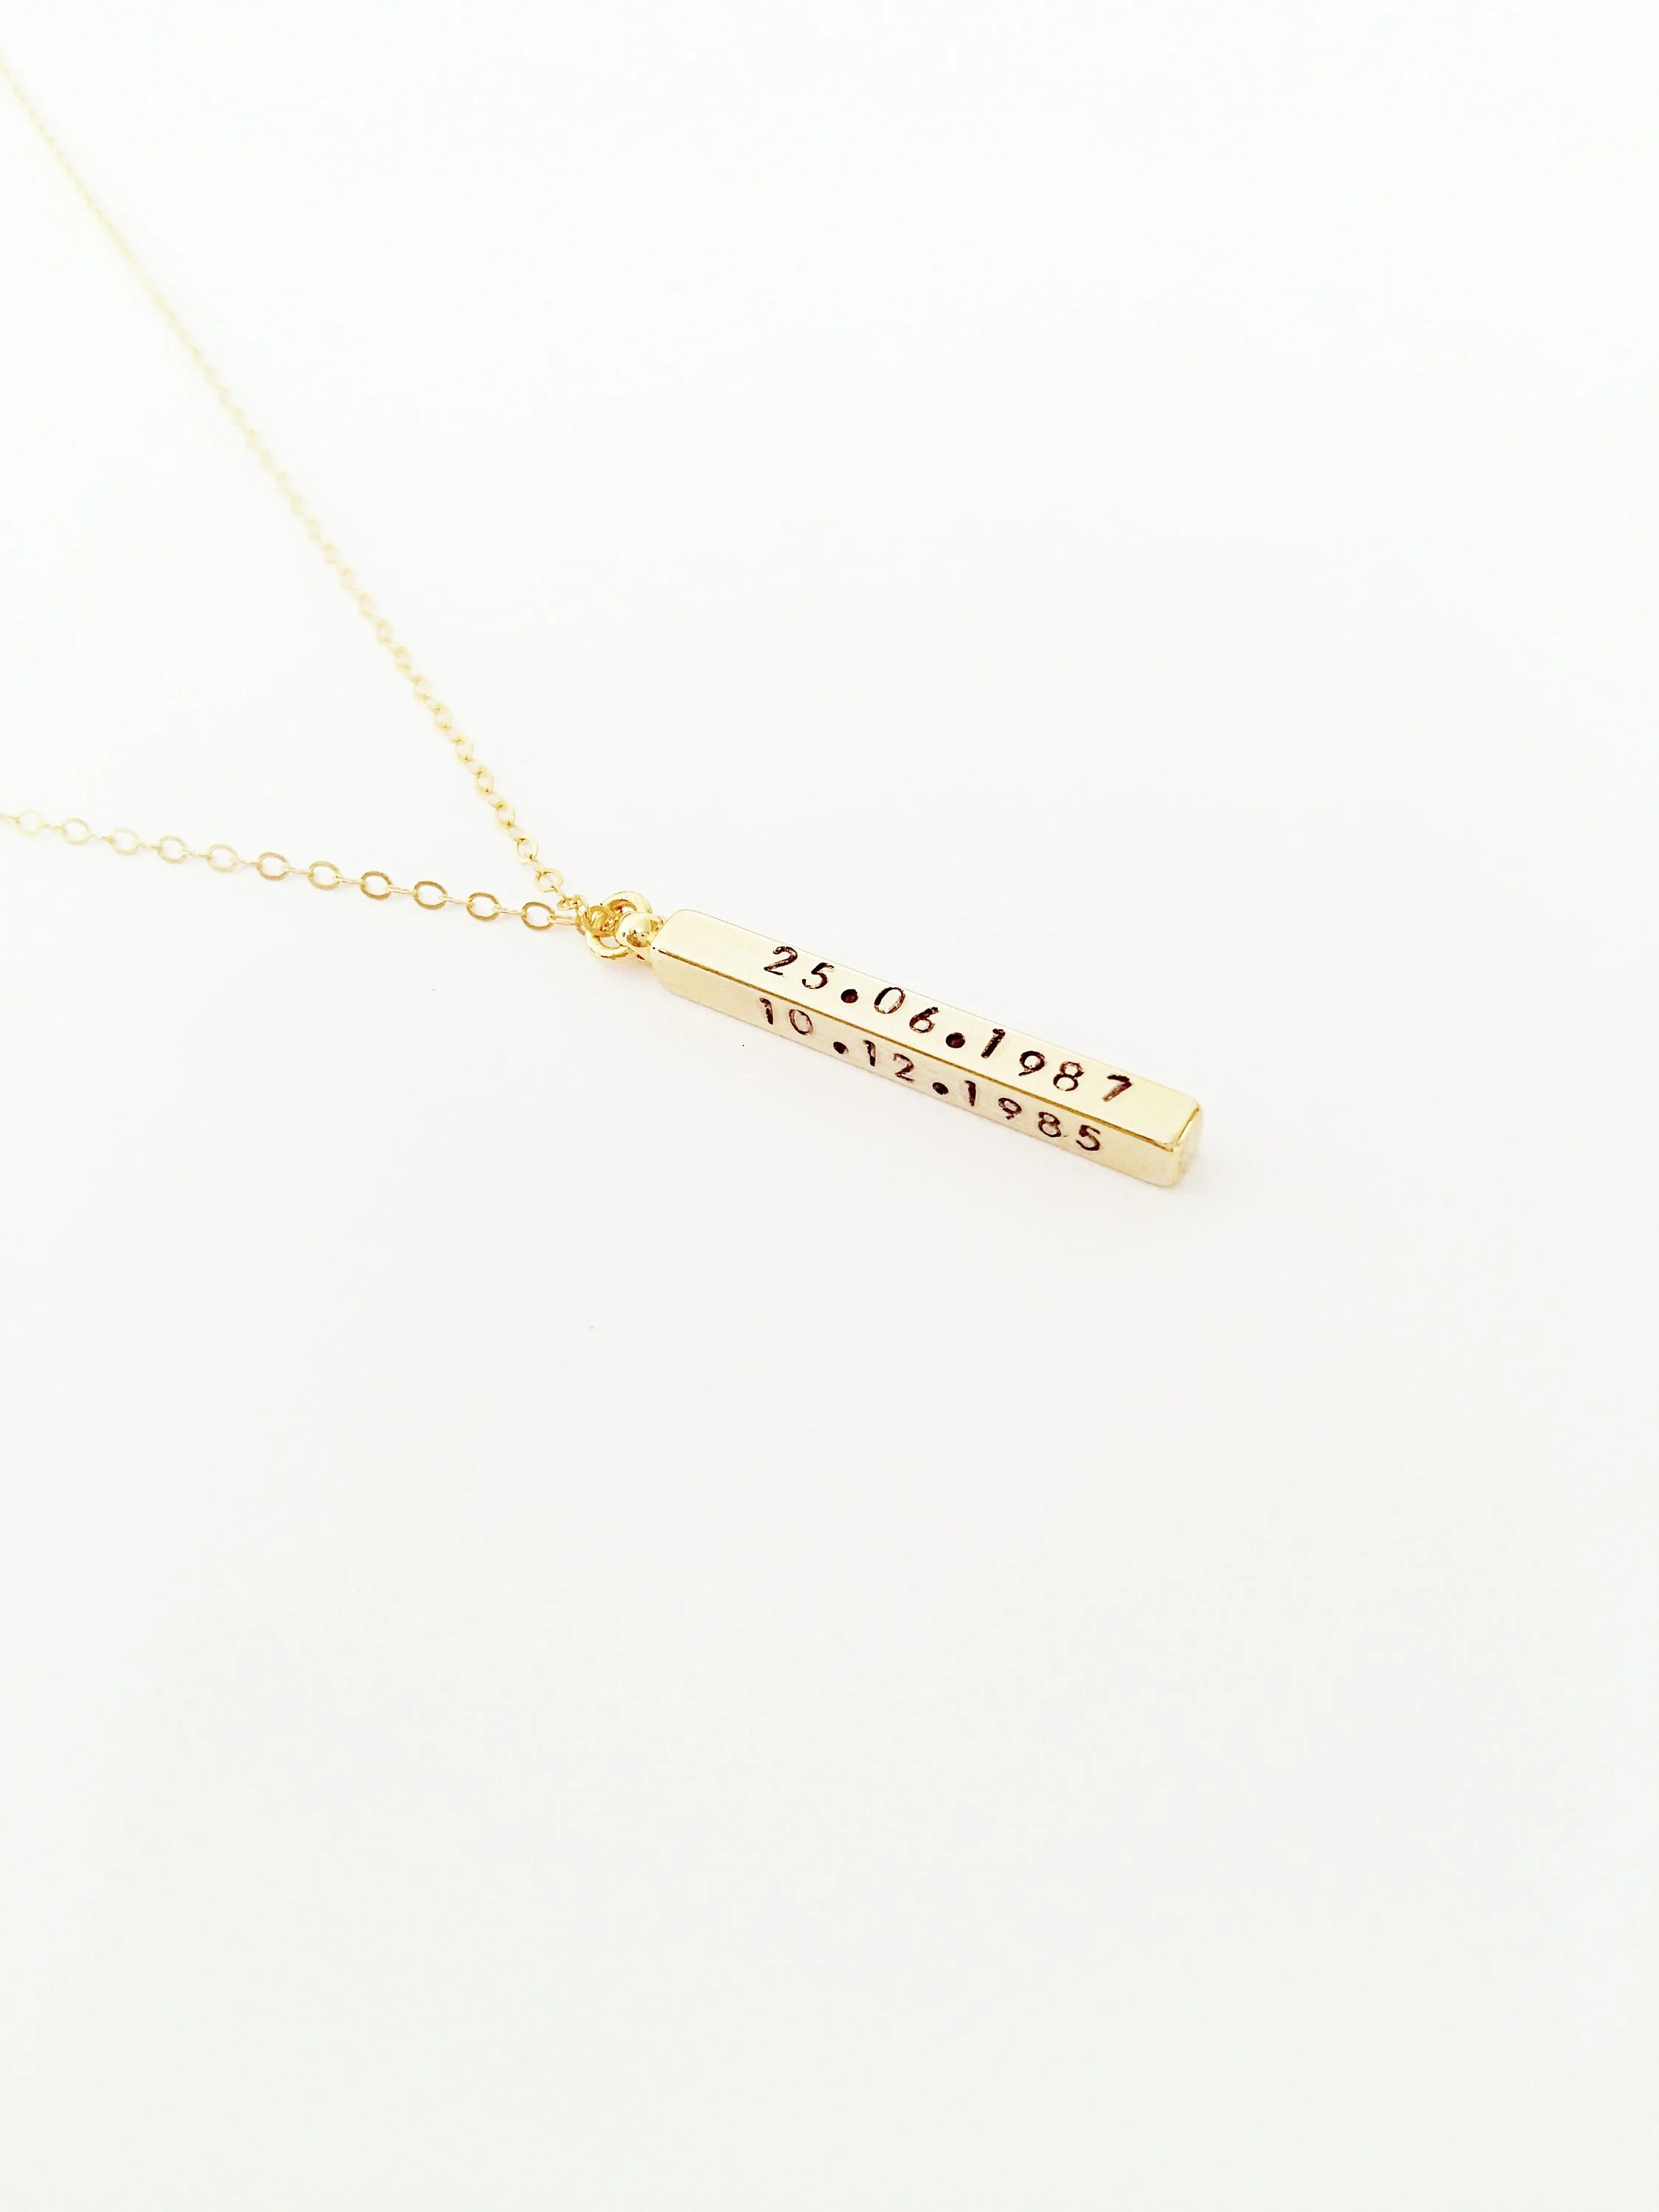 Personalized 3D Bar Necklace // Custom Name Date Phrase image 9